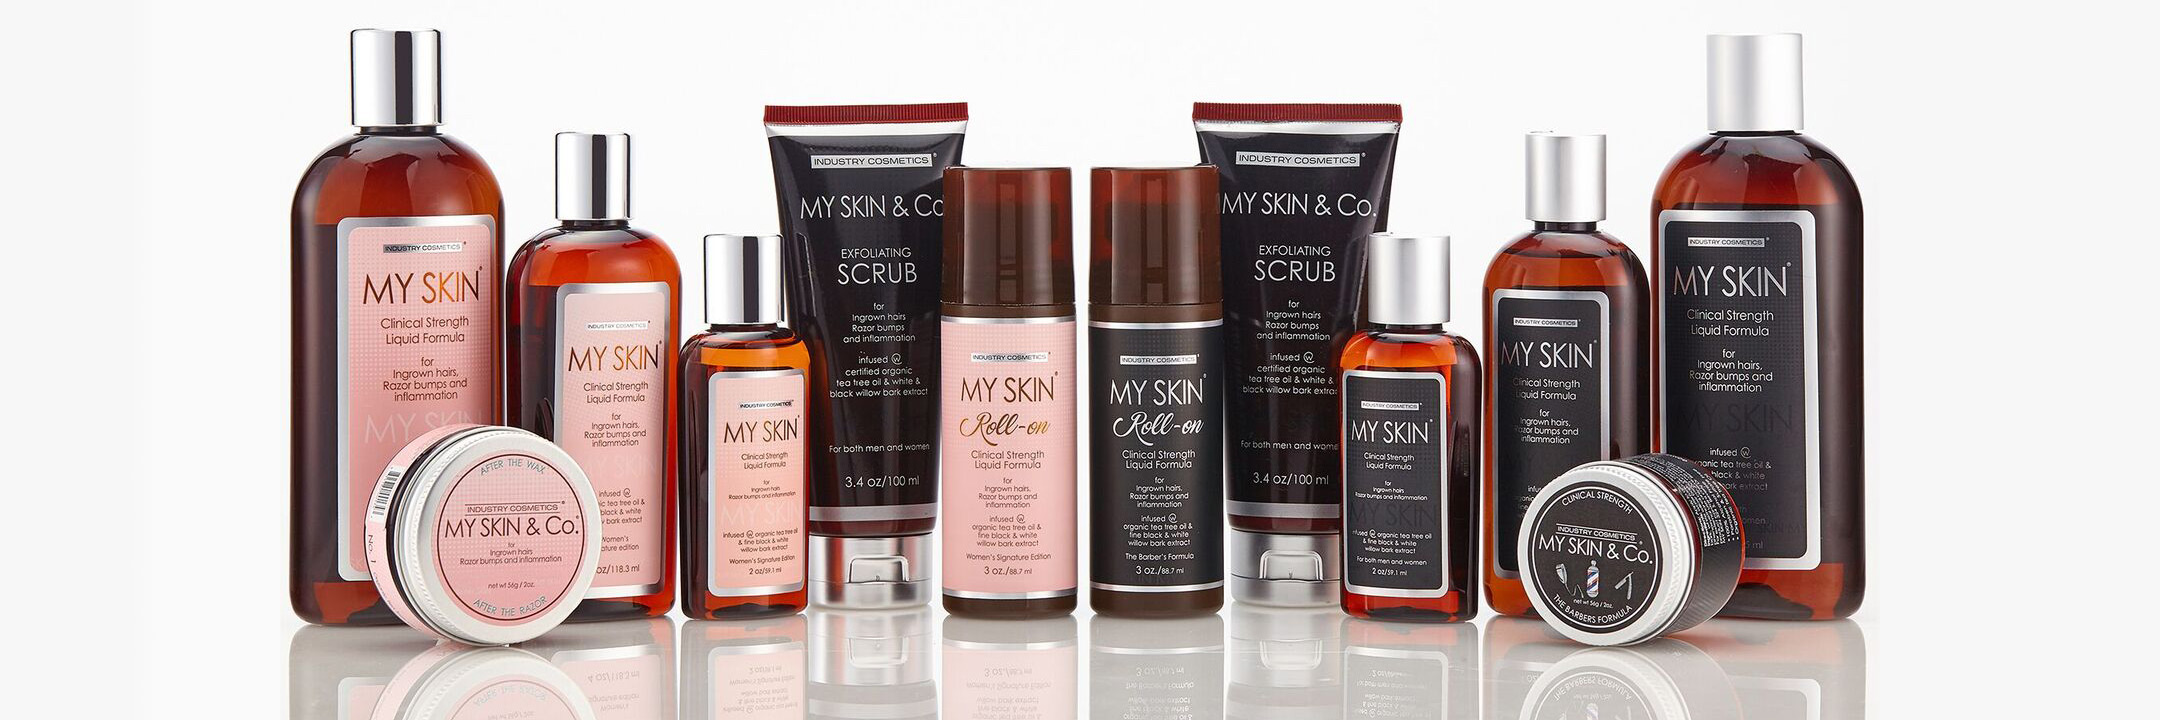 Go My Skin's Complete line of products